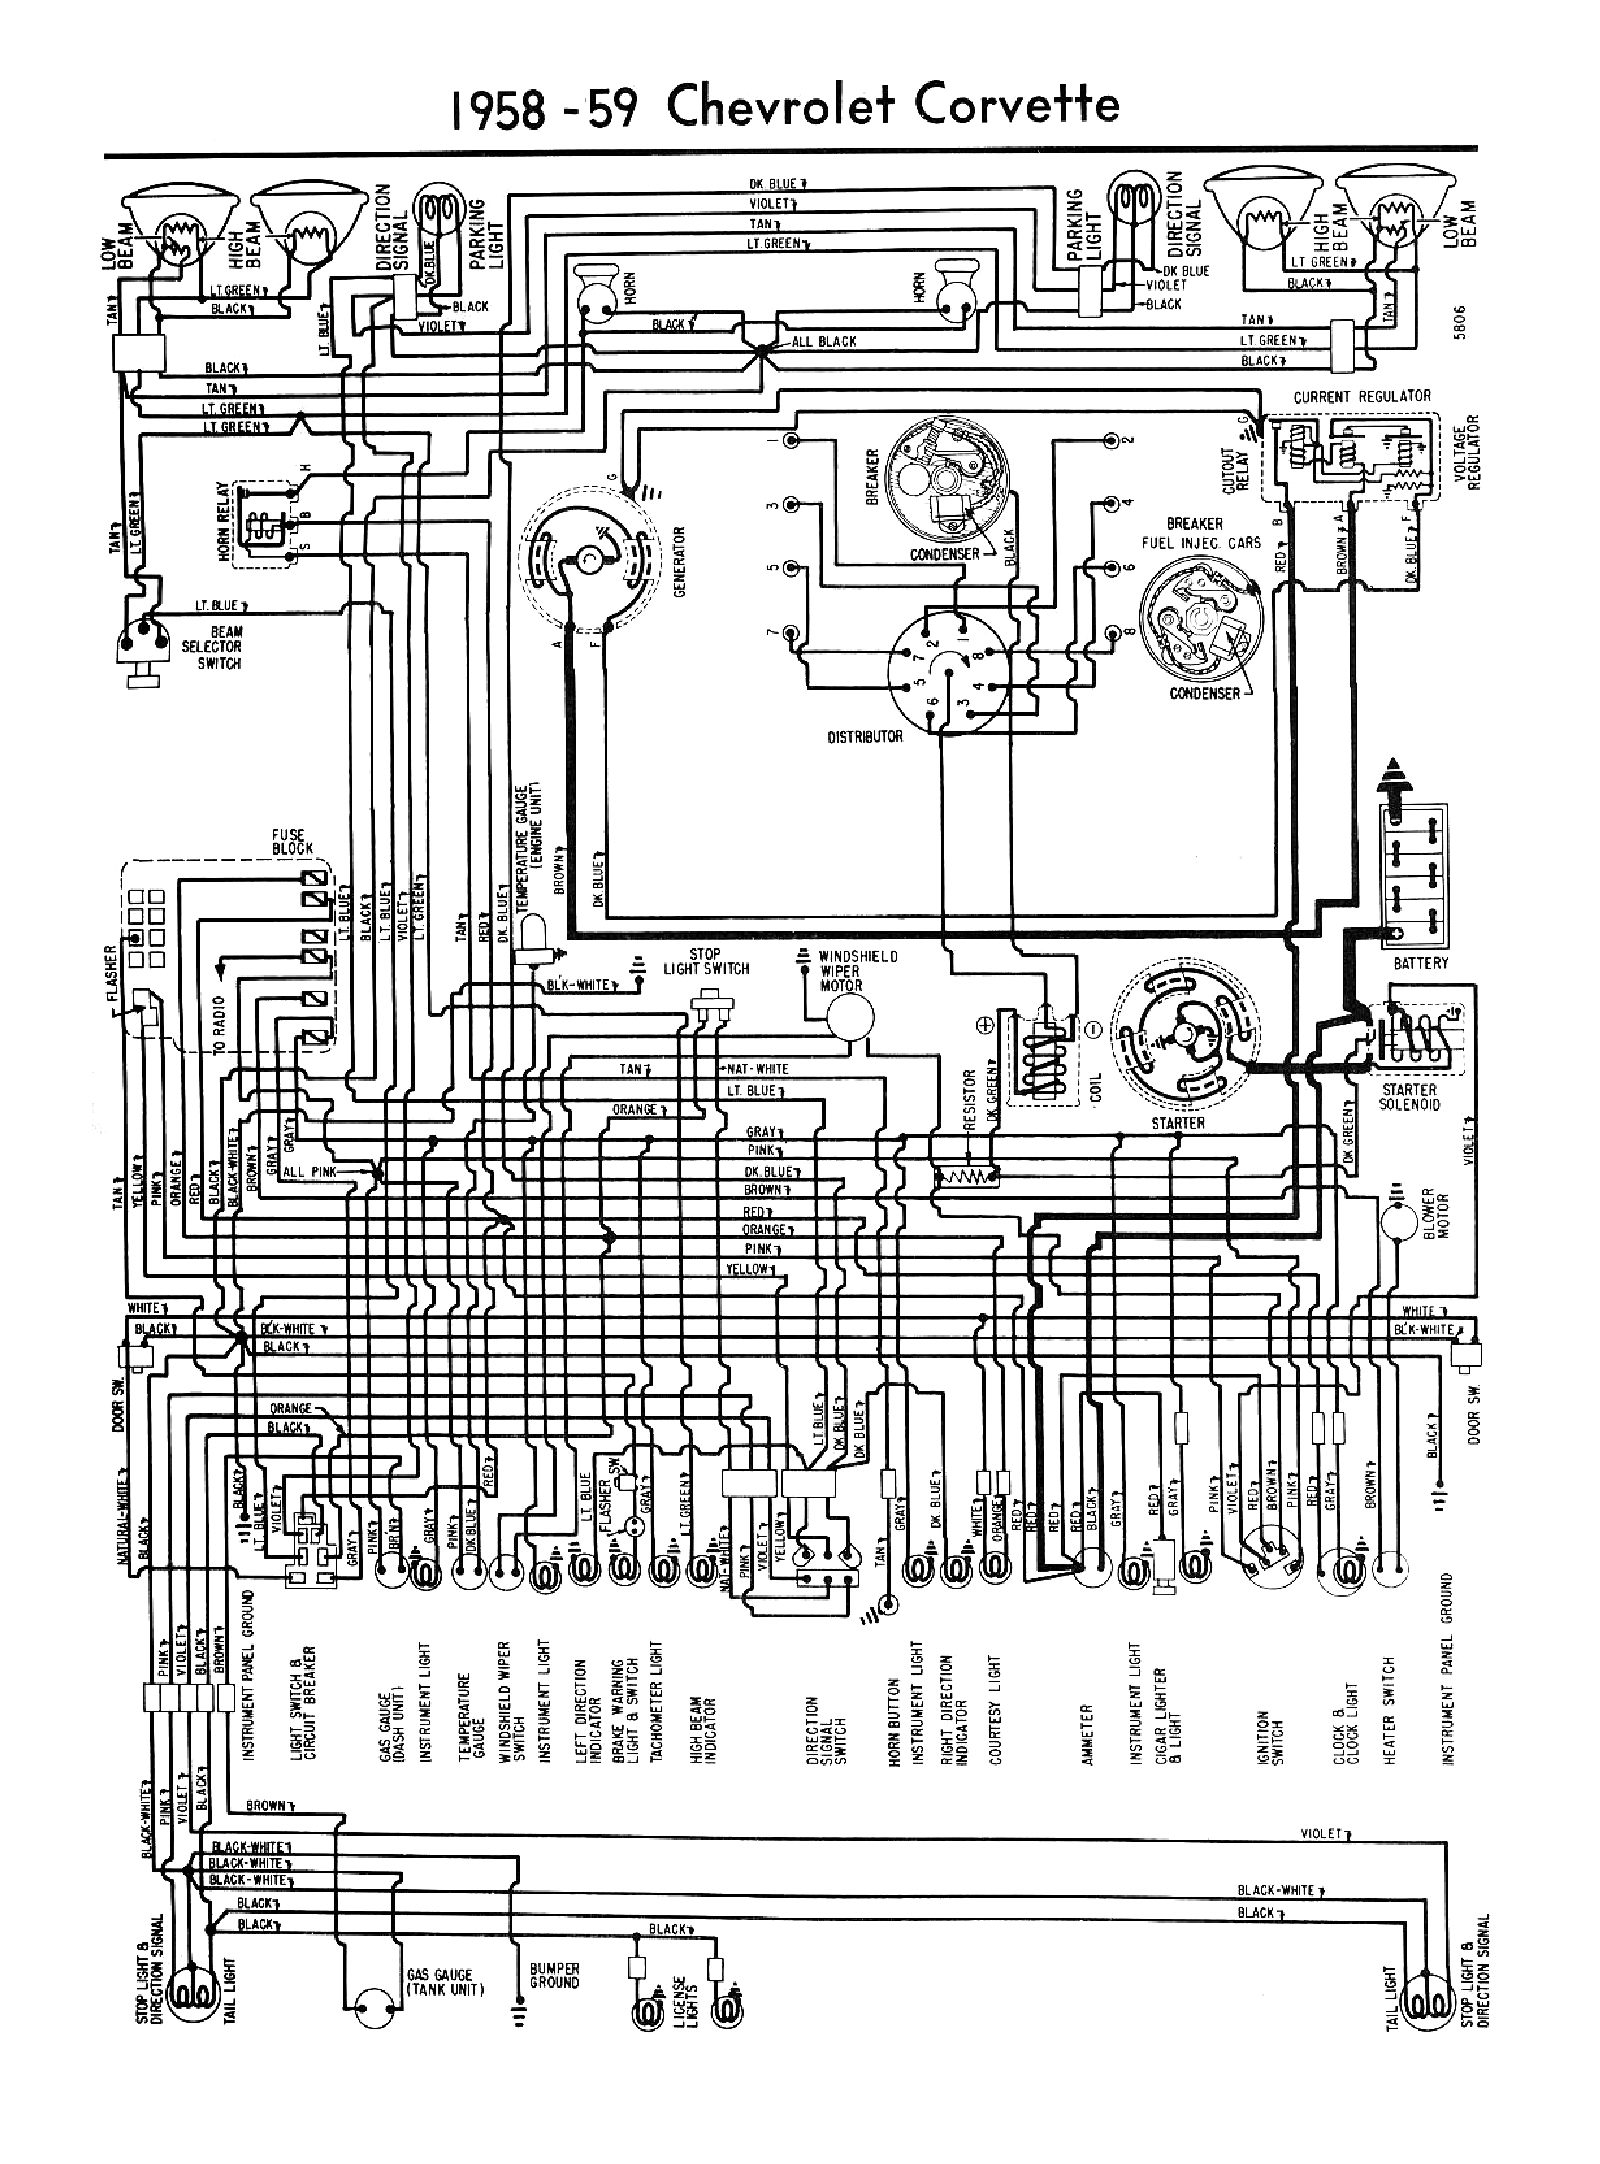 Chevy Wiring Diagrams 1953 Lincoln Diagram 1958 Corvette